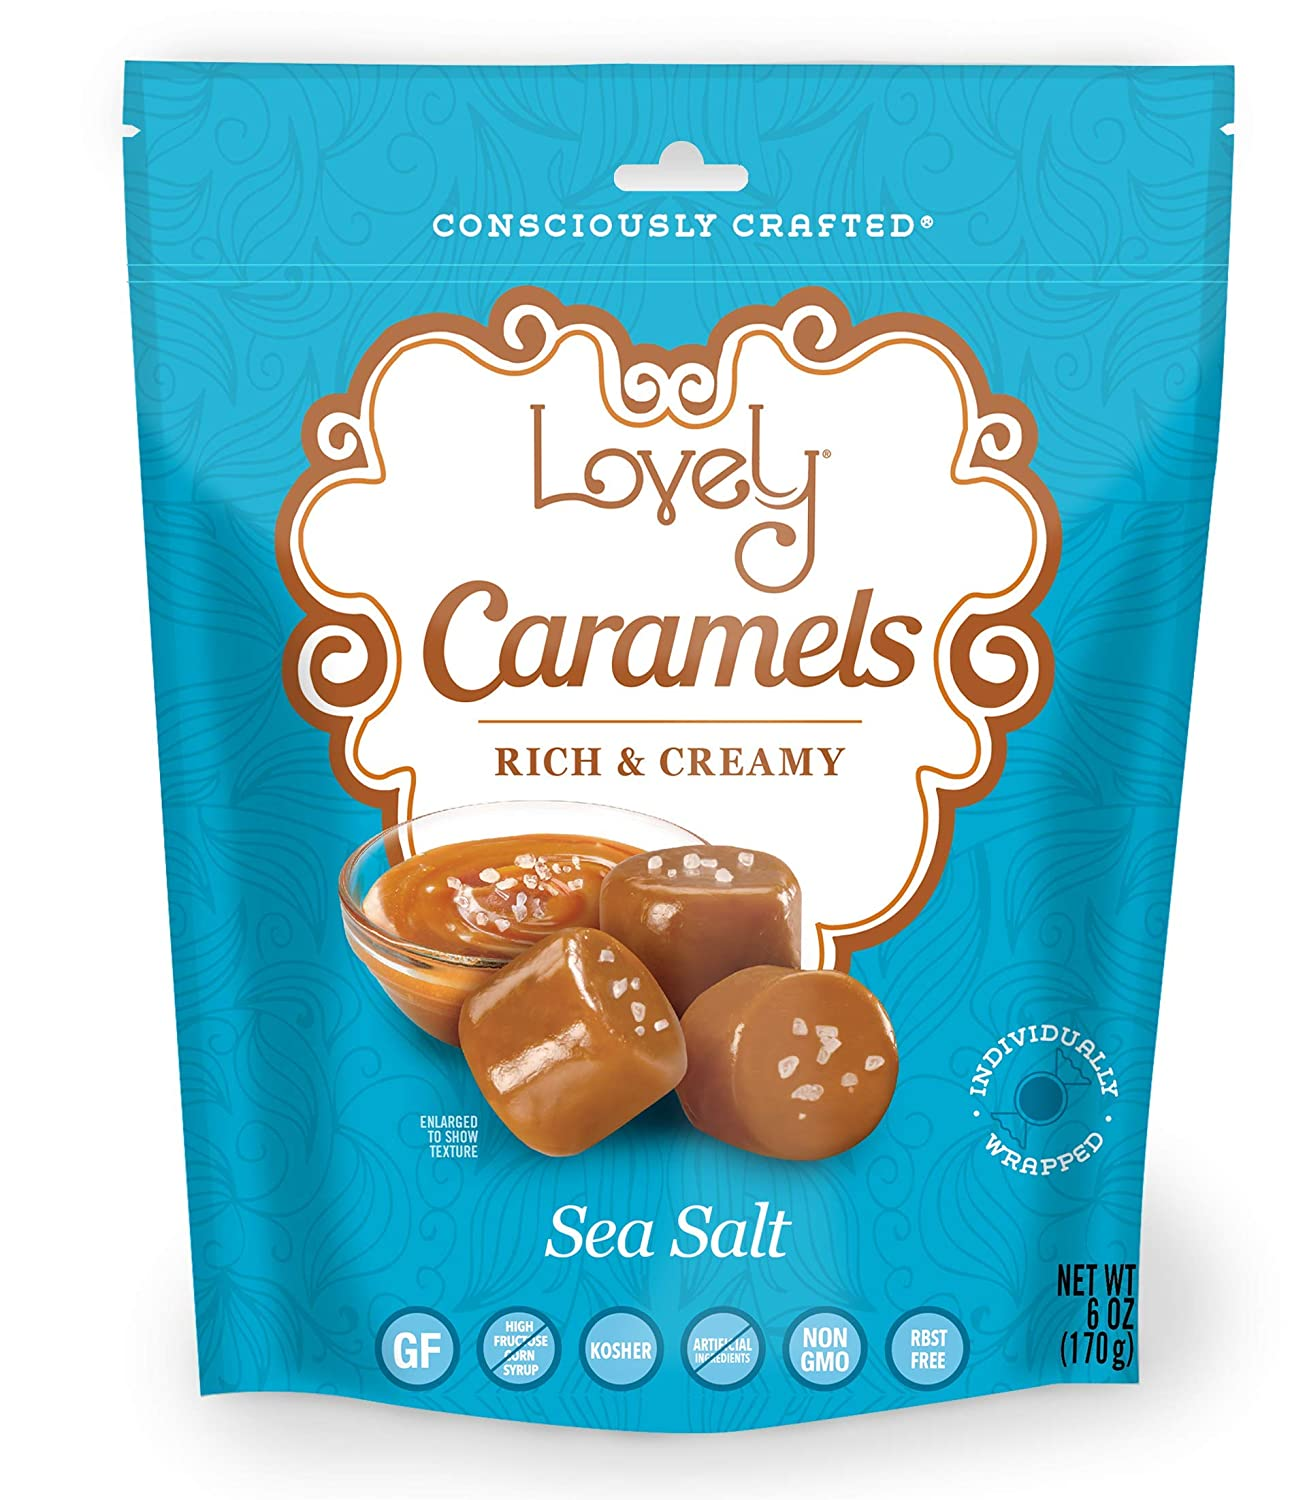 Soft and Chewy Sea Salt Caramels - Lovely Co. 6 oz. Bag - Old Fashioned Style, Authentic Caramel Candies - Non-GMO, Soy & HFCS- Free, Gluten-Free and Kosher!